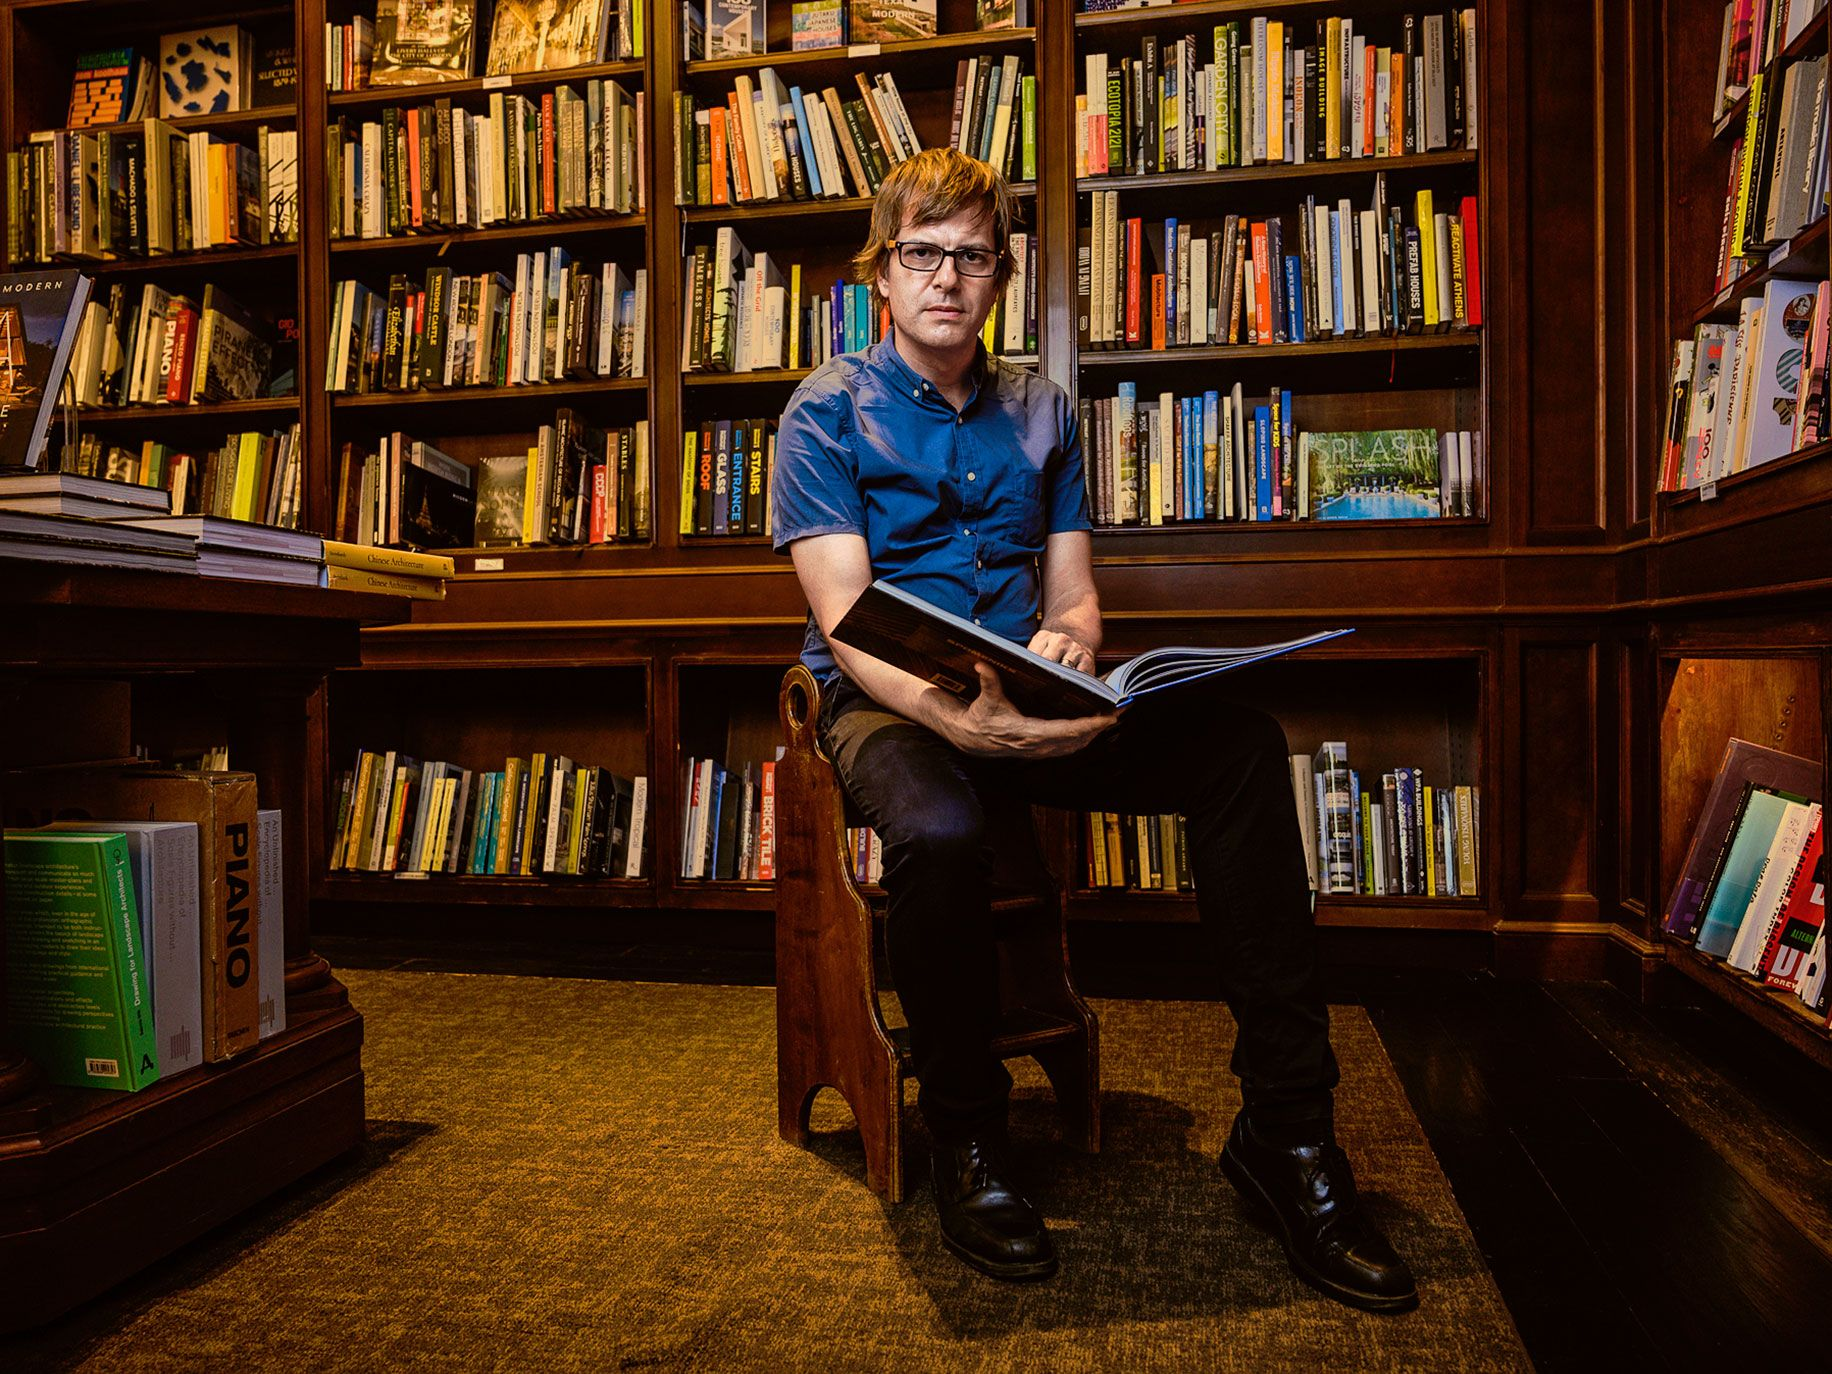 Andy Hunter, CEO of the startup Bookshop, sees an opportunity to help independent booksellers thrive by offering better online shopping experiences and two-day deliveries.